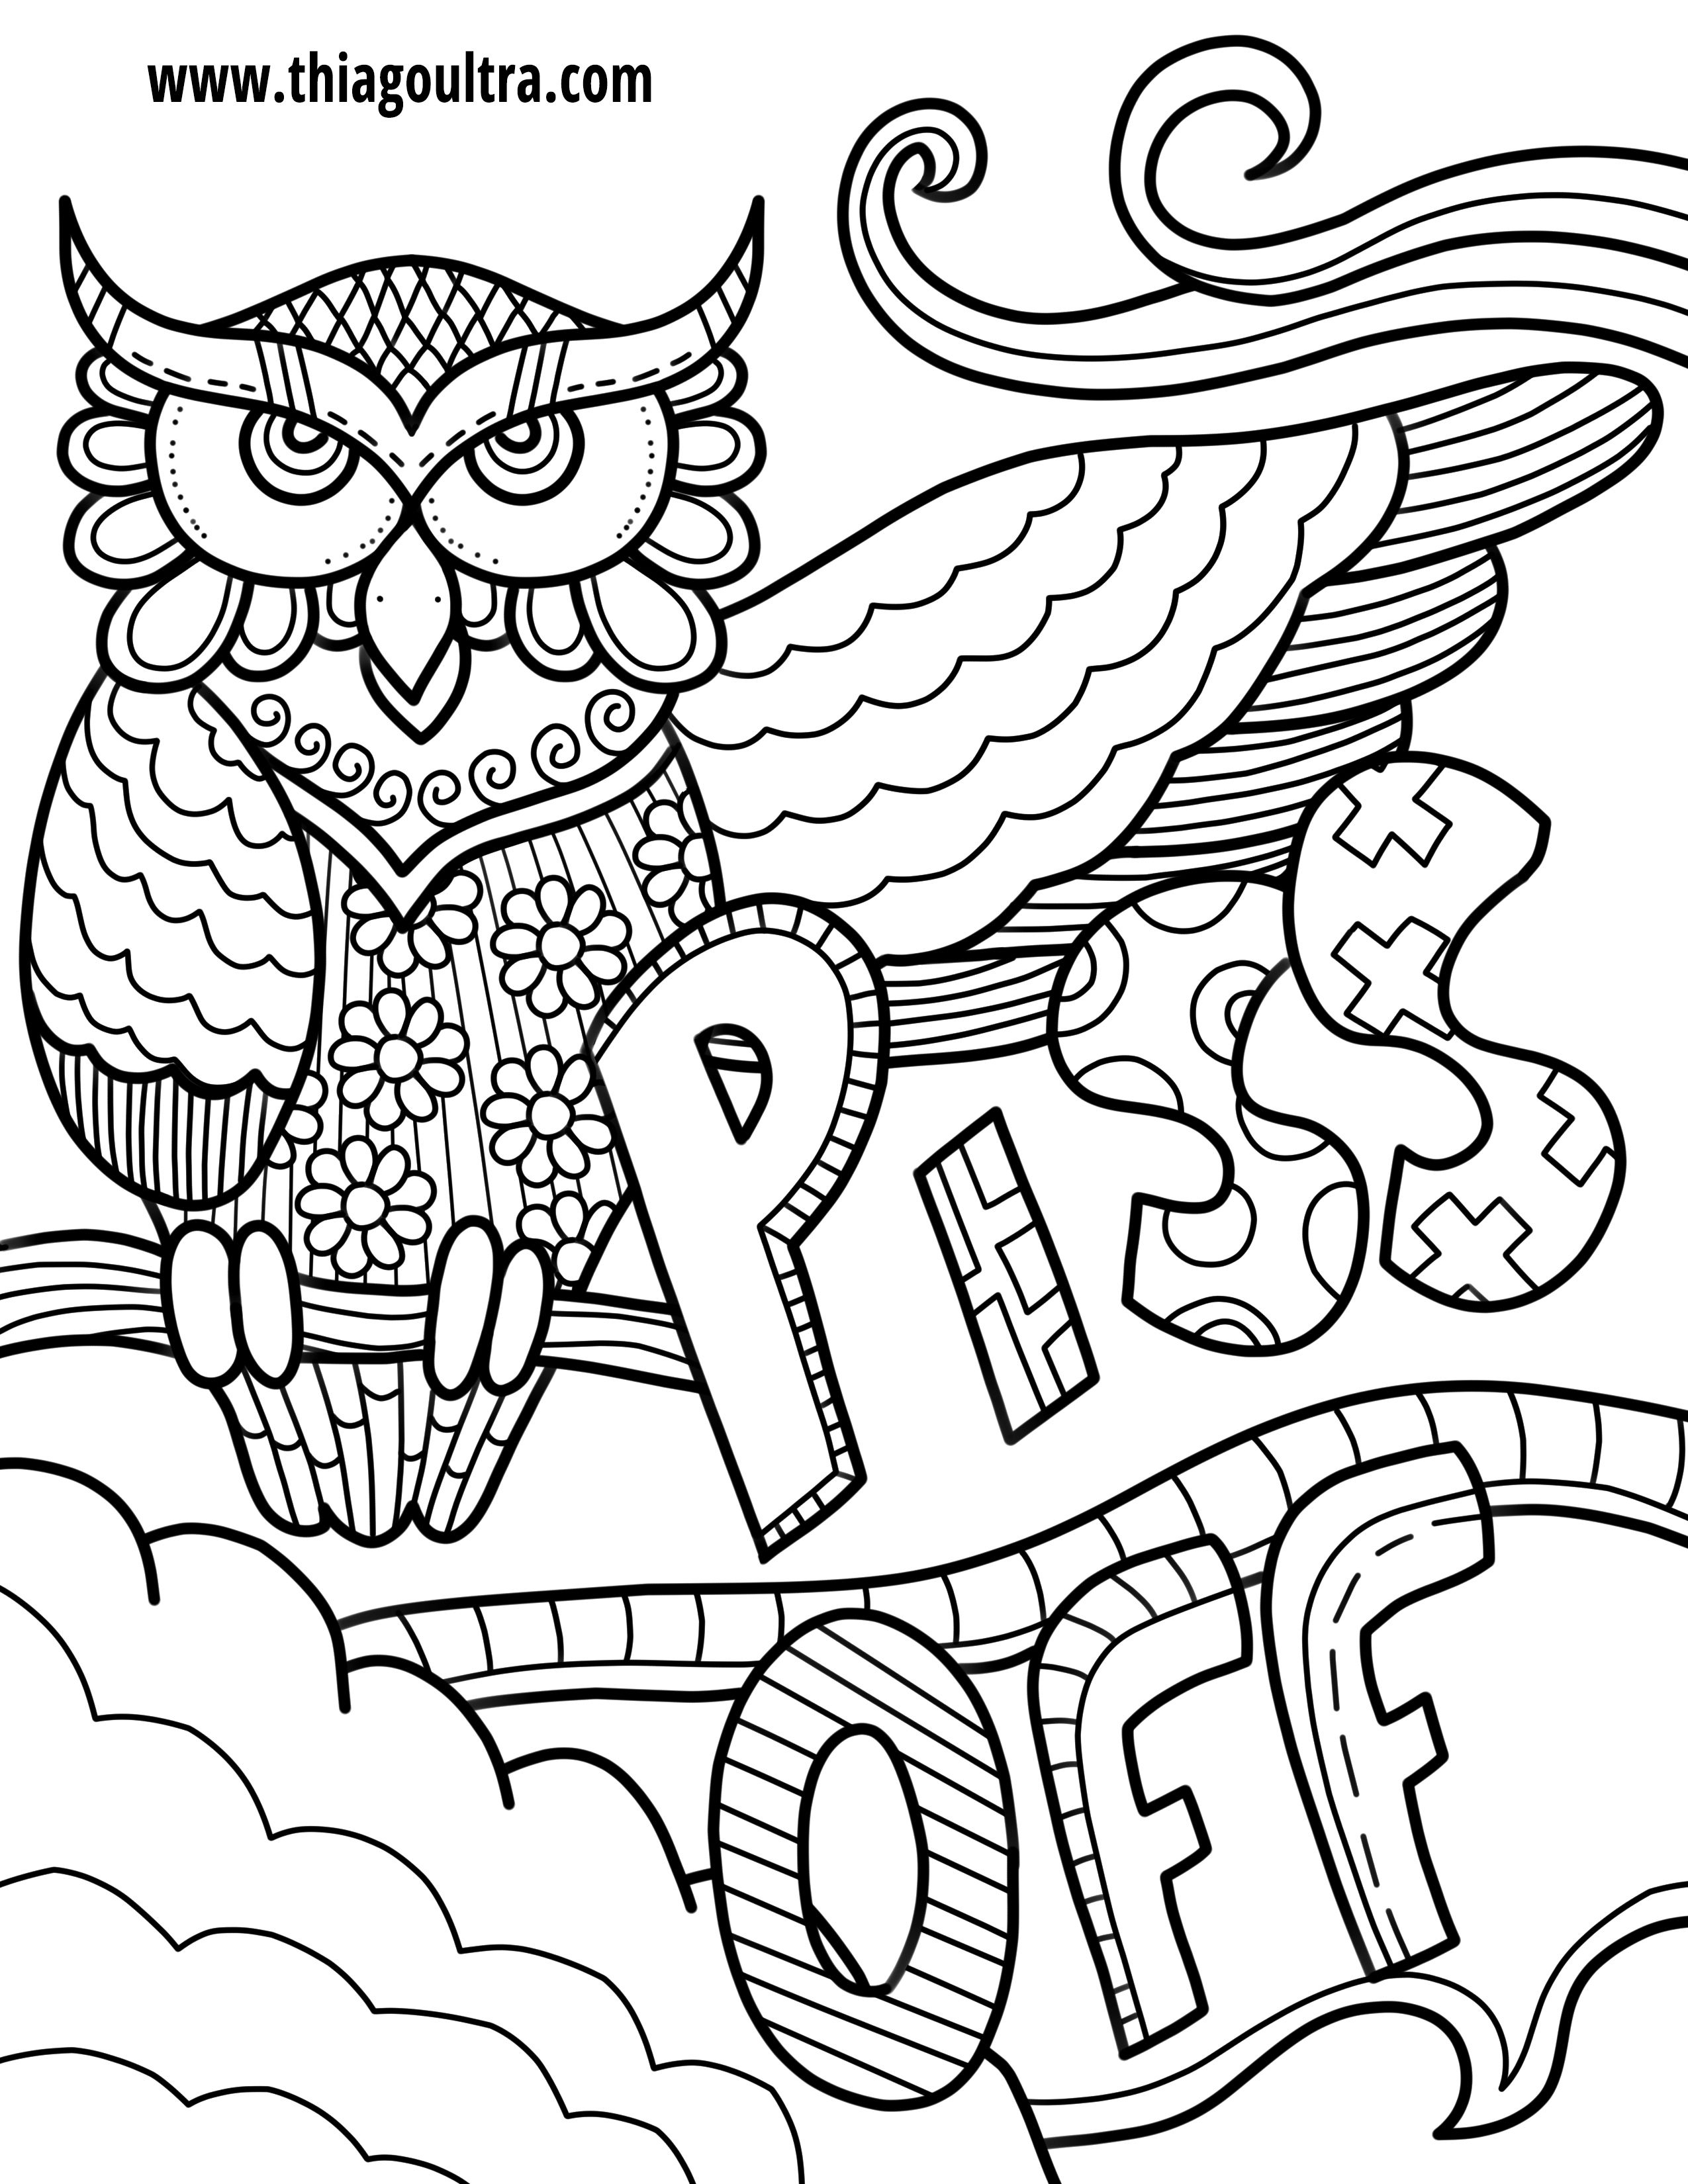 Challenge Free Printable Coloring Pages For Adults Only Swear Words - Free Printable Coloring Pages For Adults Only Swear Words